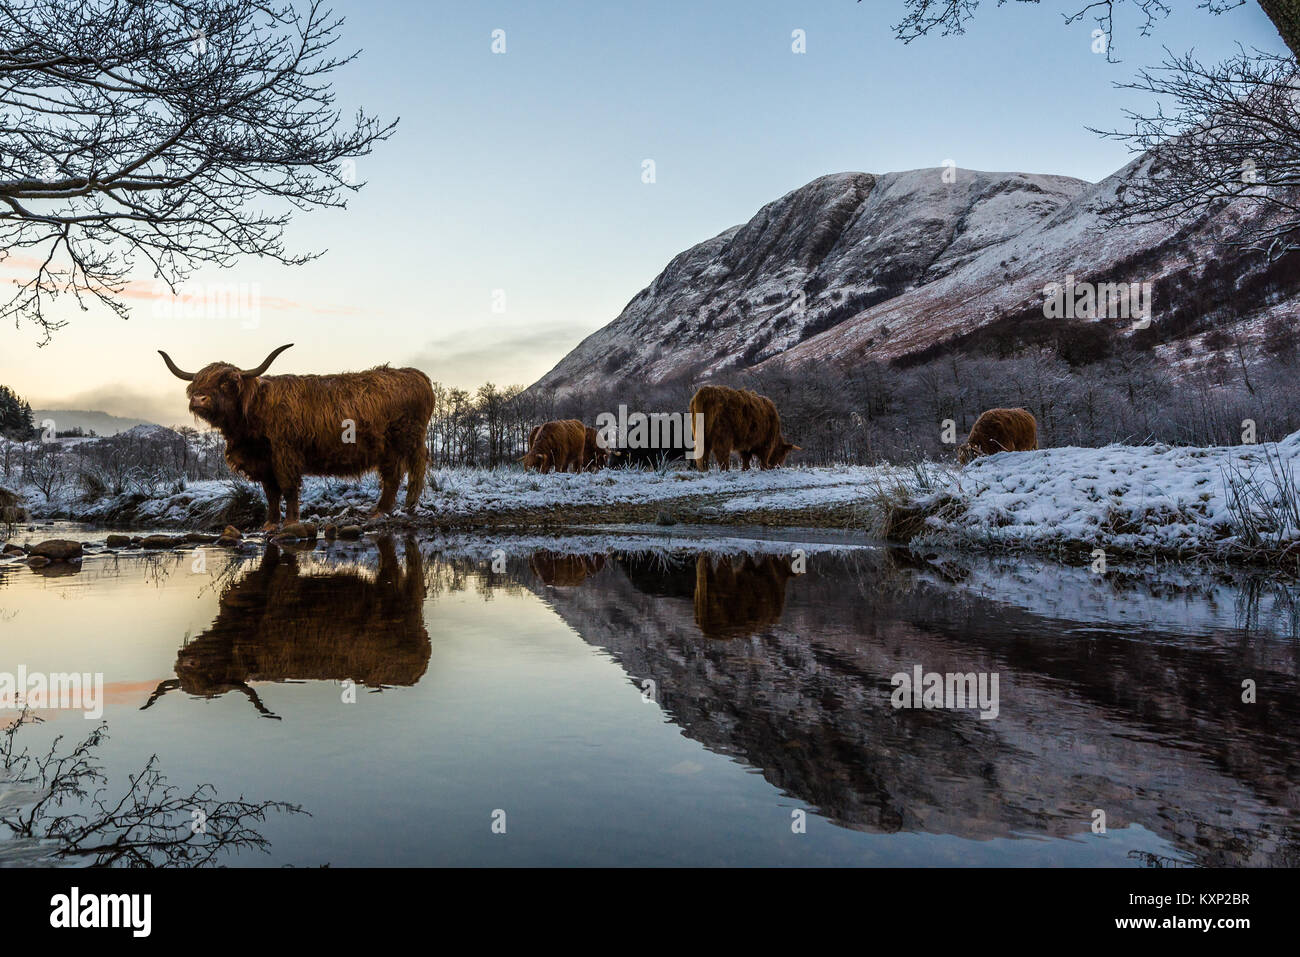 Highland Cows in Winter - Stock Image